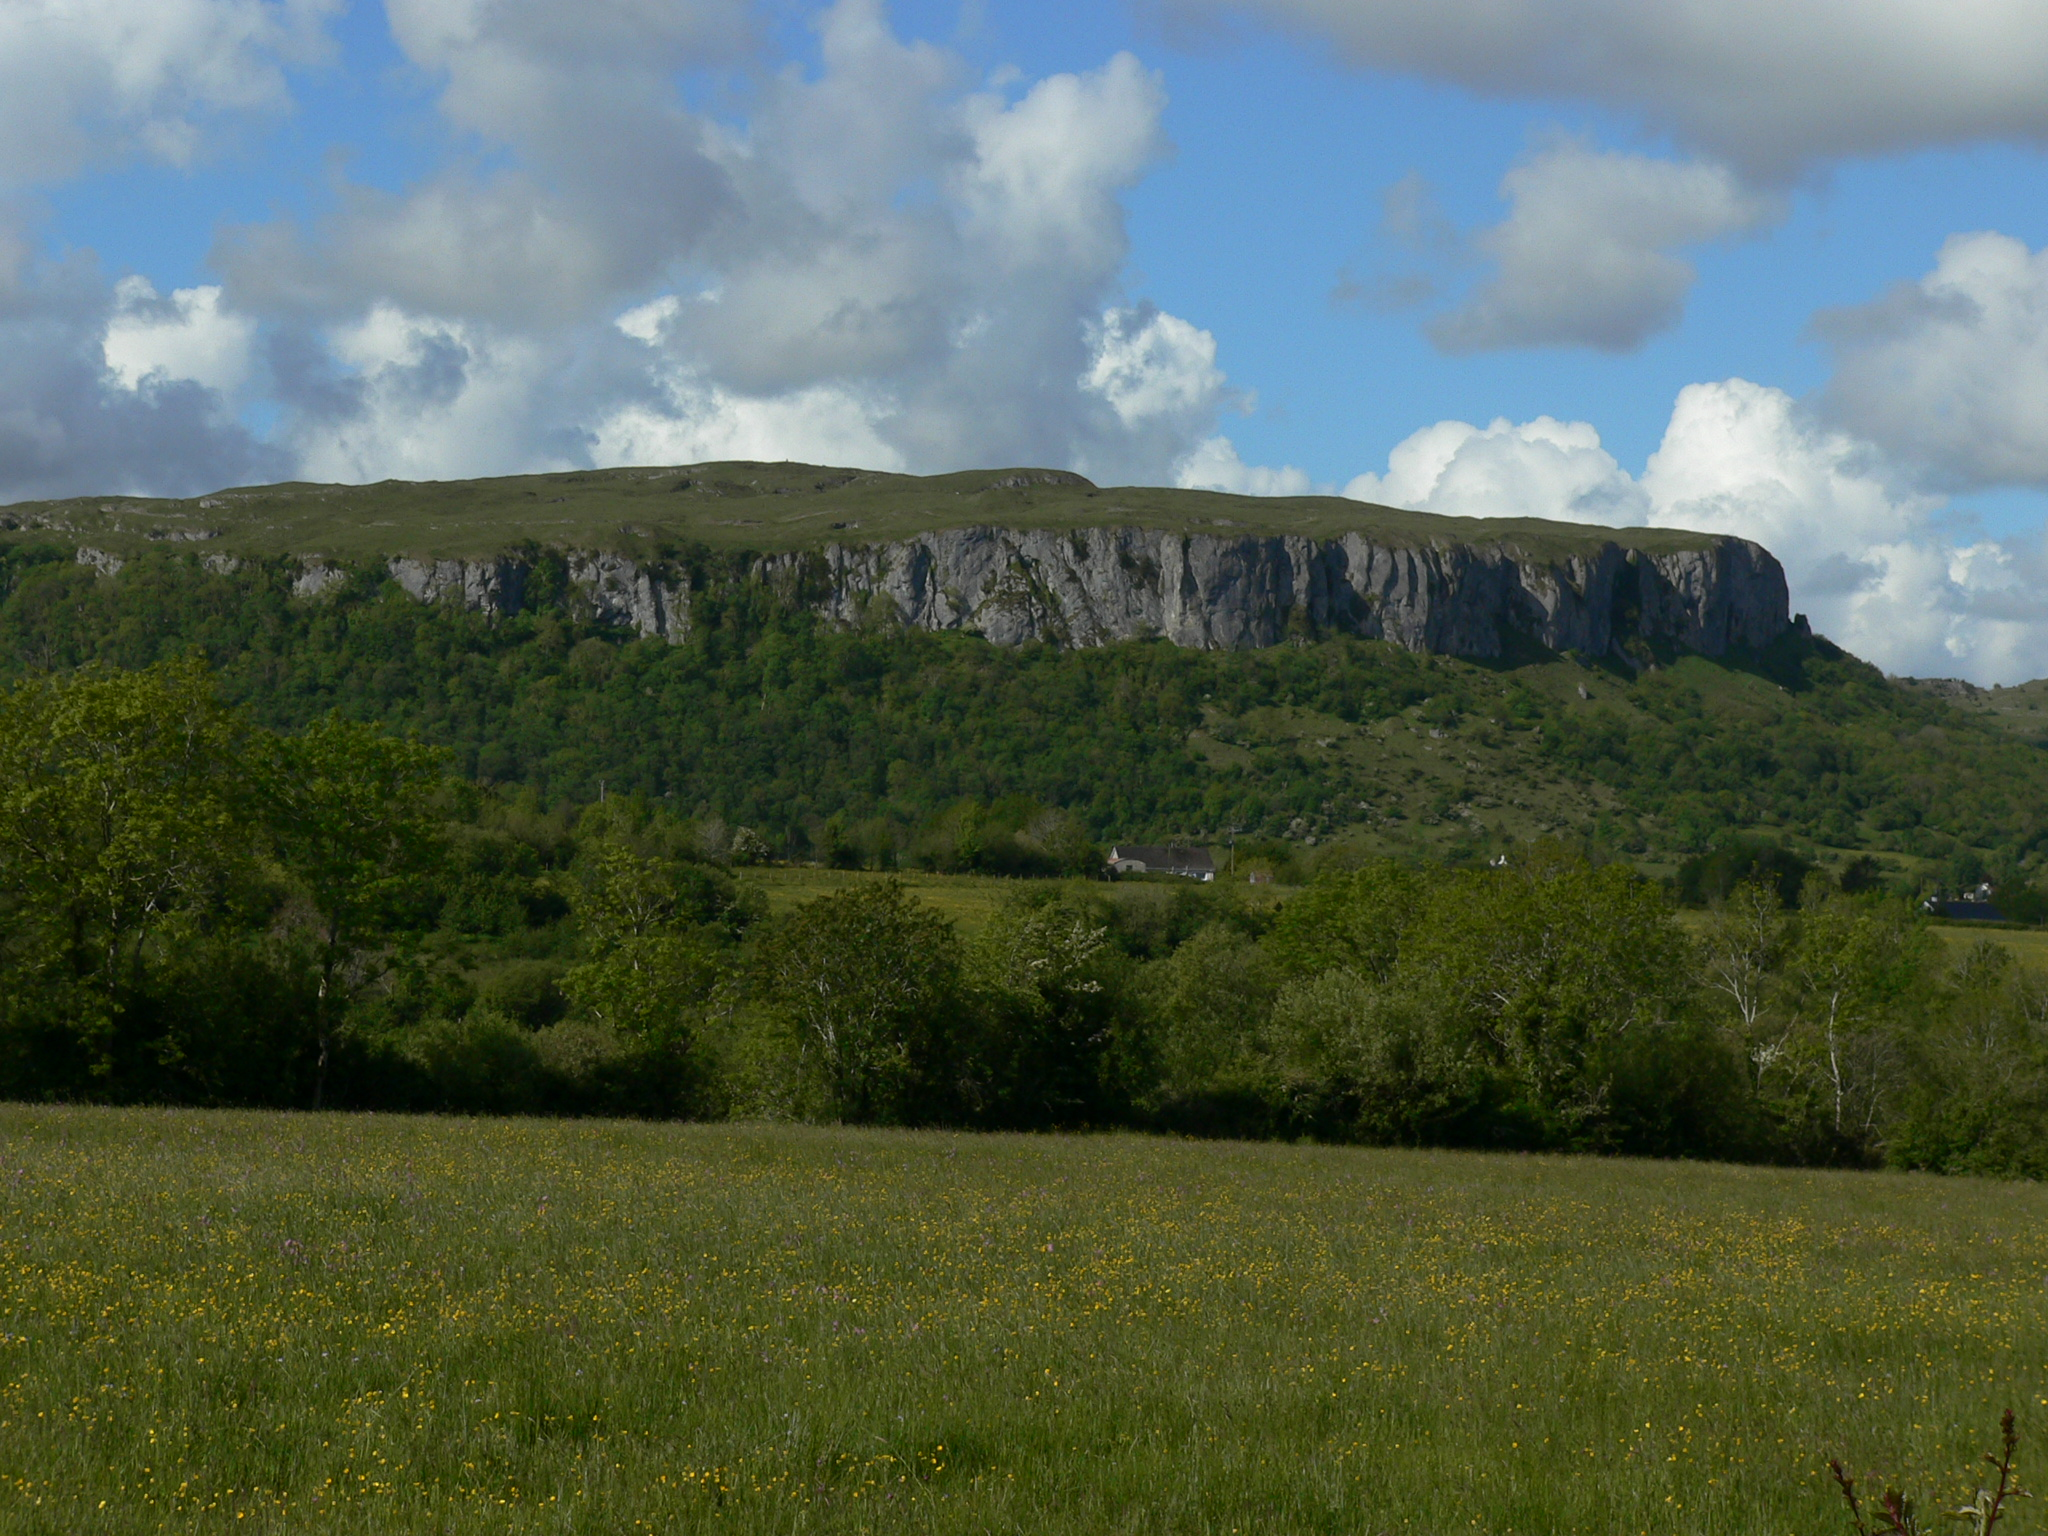 Cuilcagh-Mountain-and-Cliffs-of-Magho, Enniskillen, Fermanagh Cavan Ireland